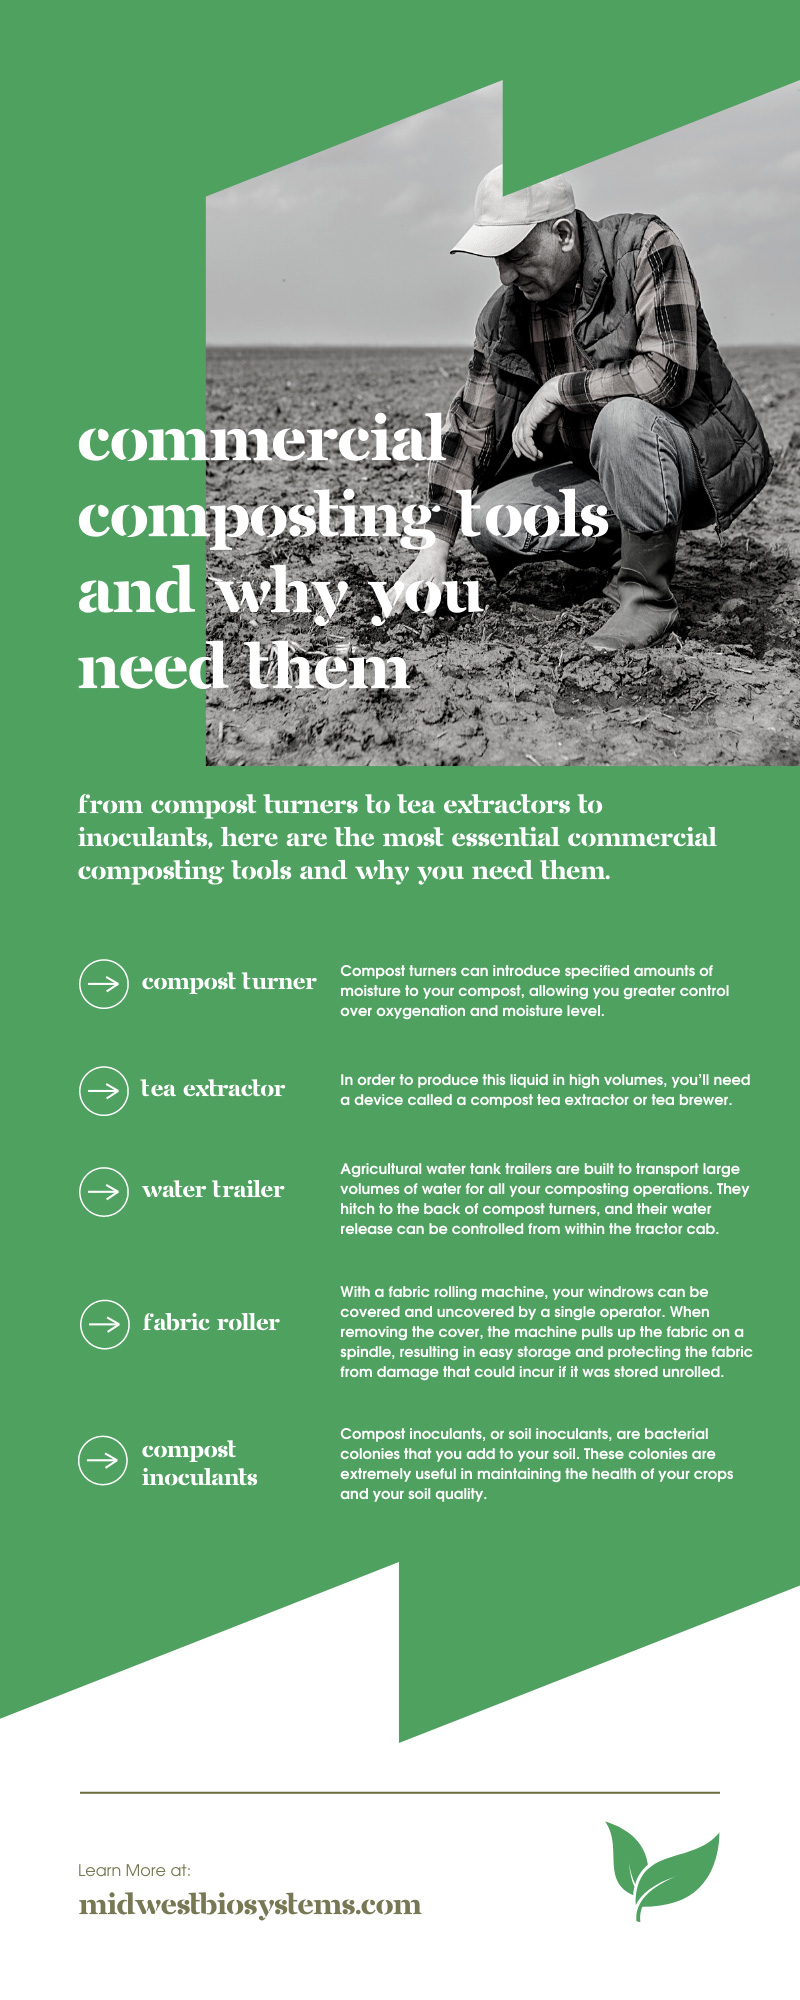 Commercial Composting Tools and Why You Need Them